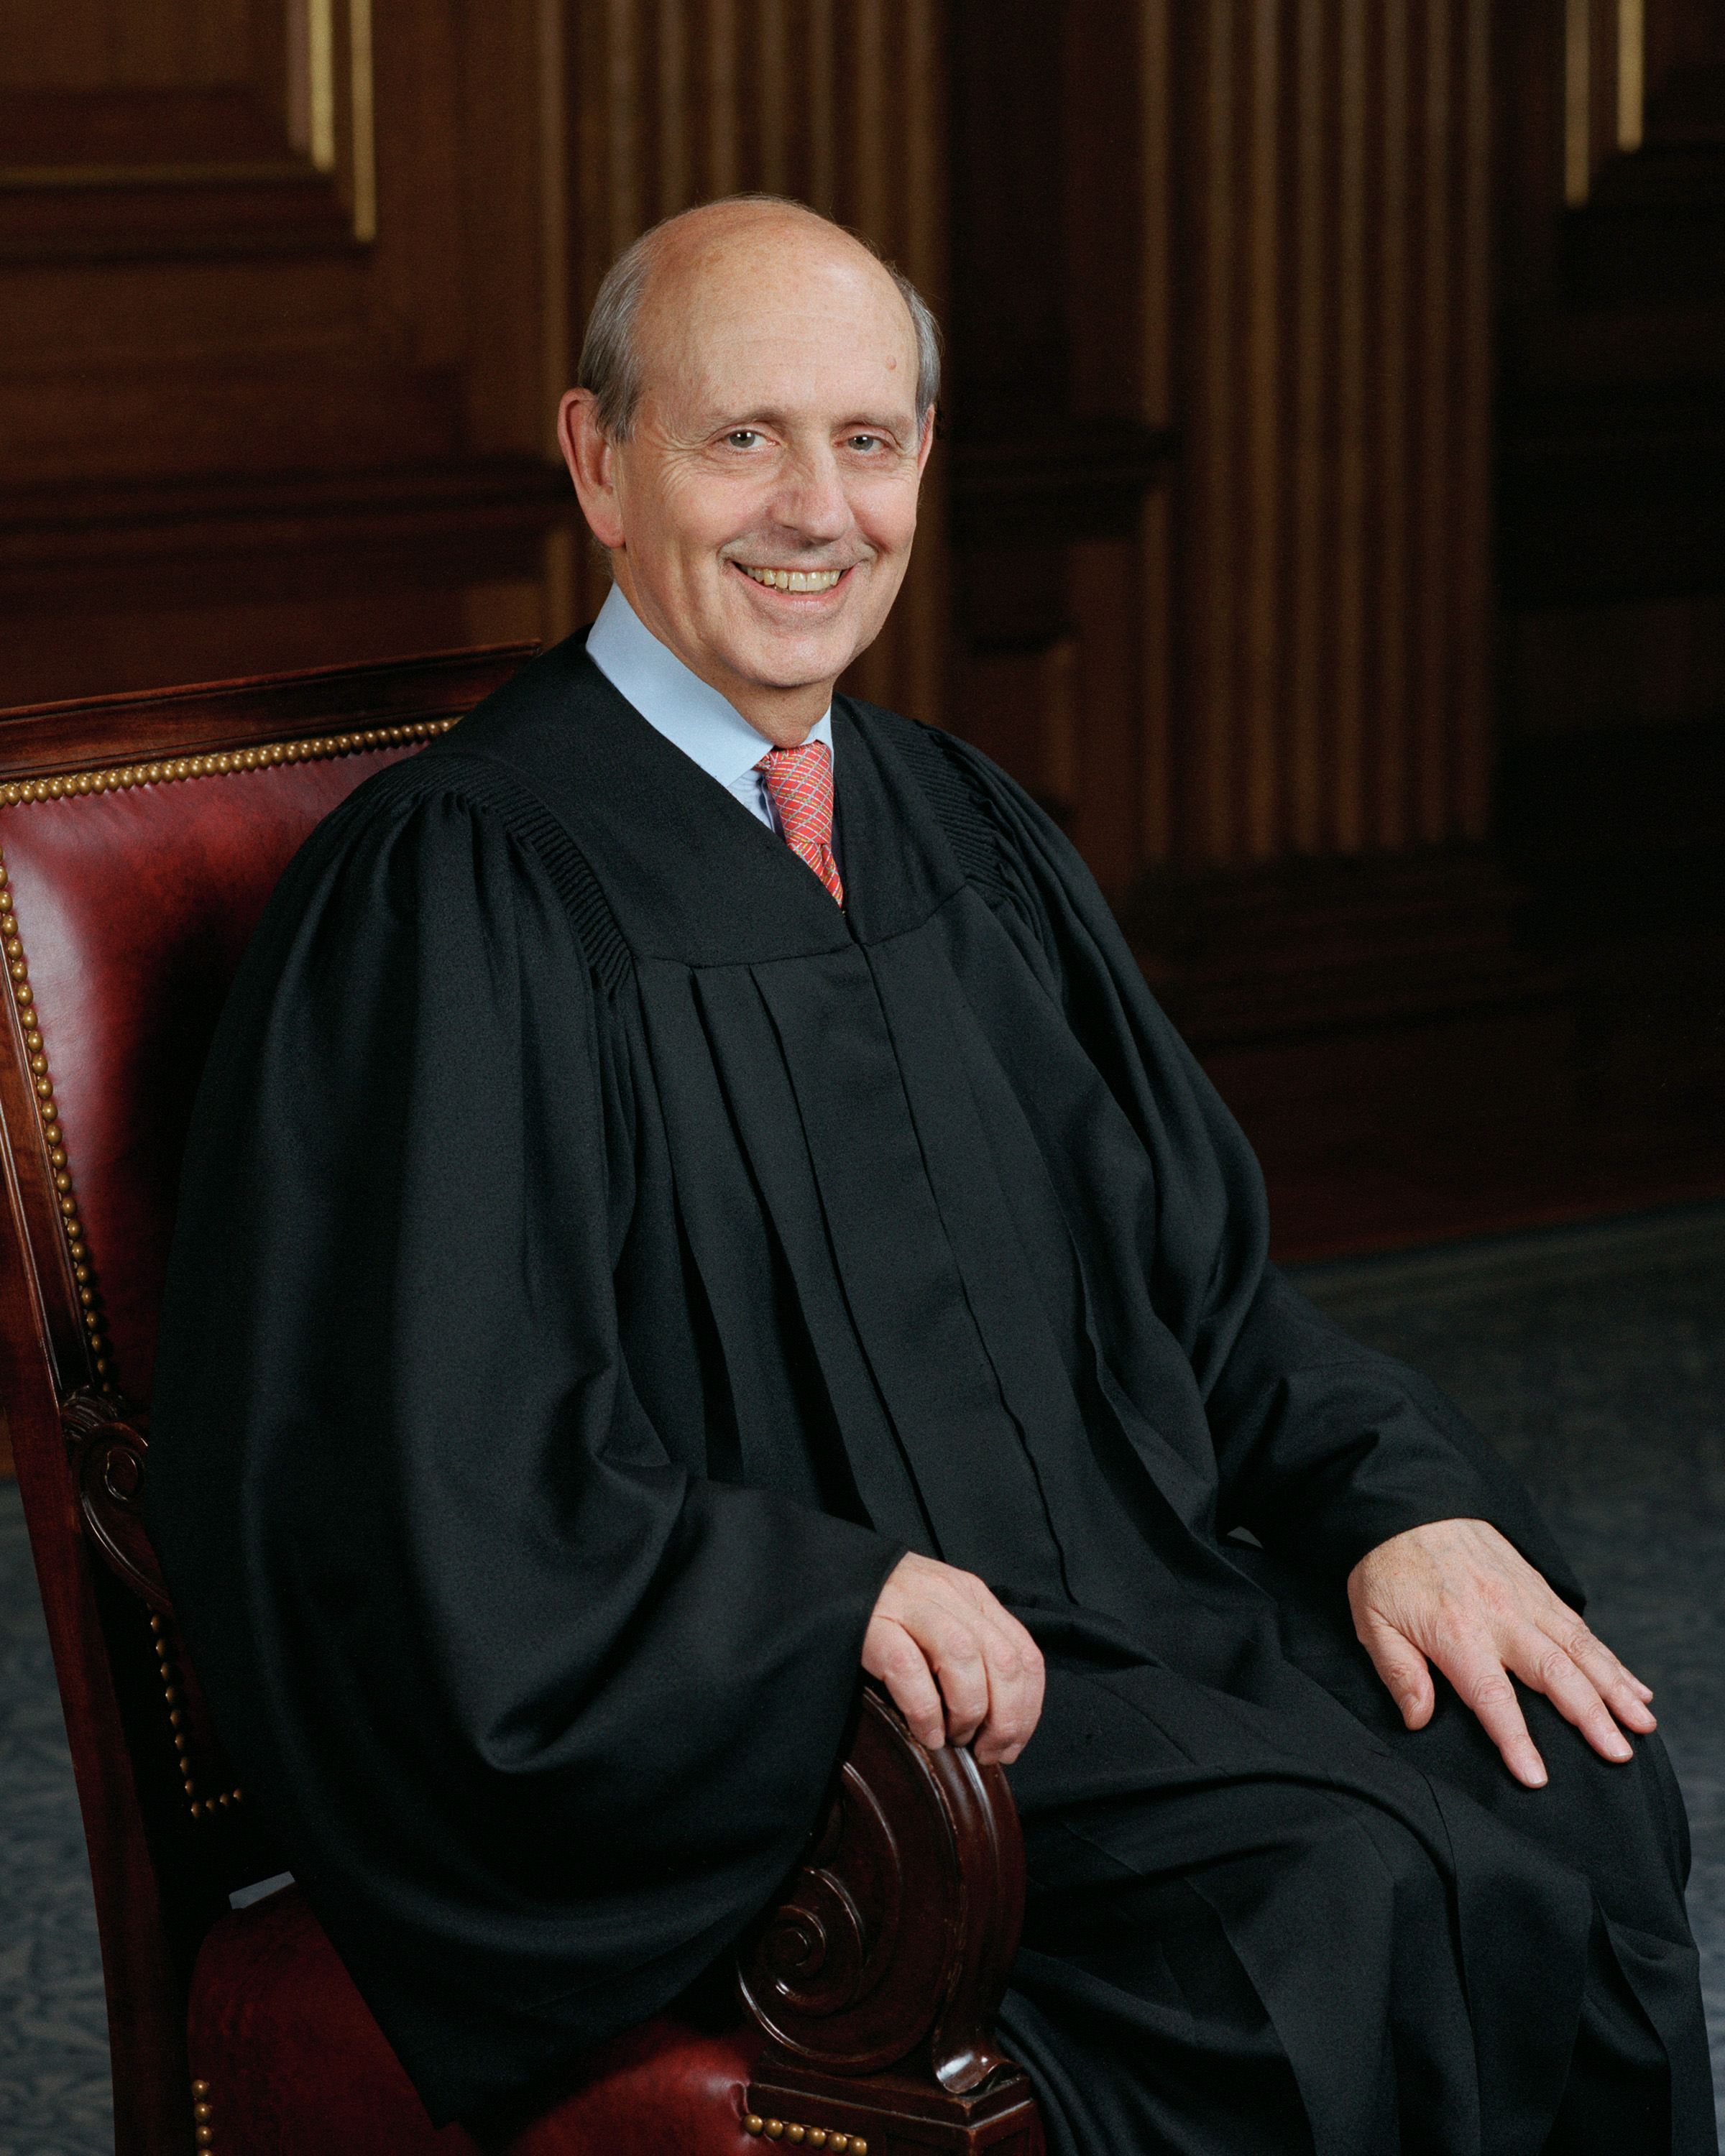 File:Stephen Breyer, SCOTUS photo portrait.jpg - Wikimedia Commons